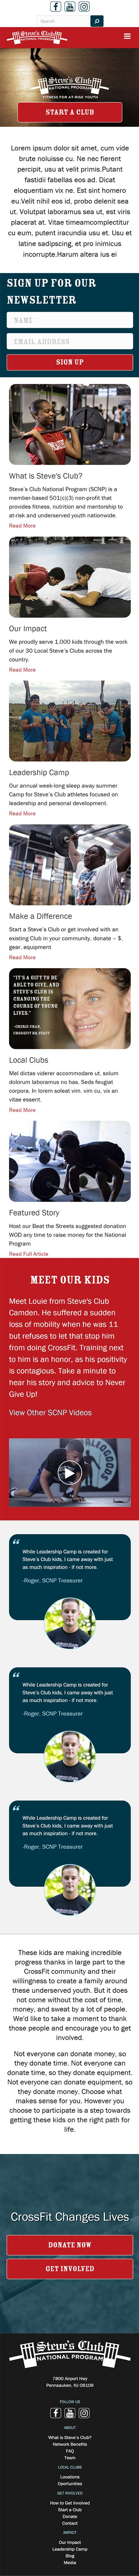 Steve's Club Mobile Website Scroll